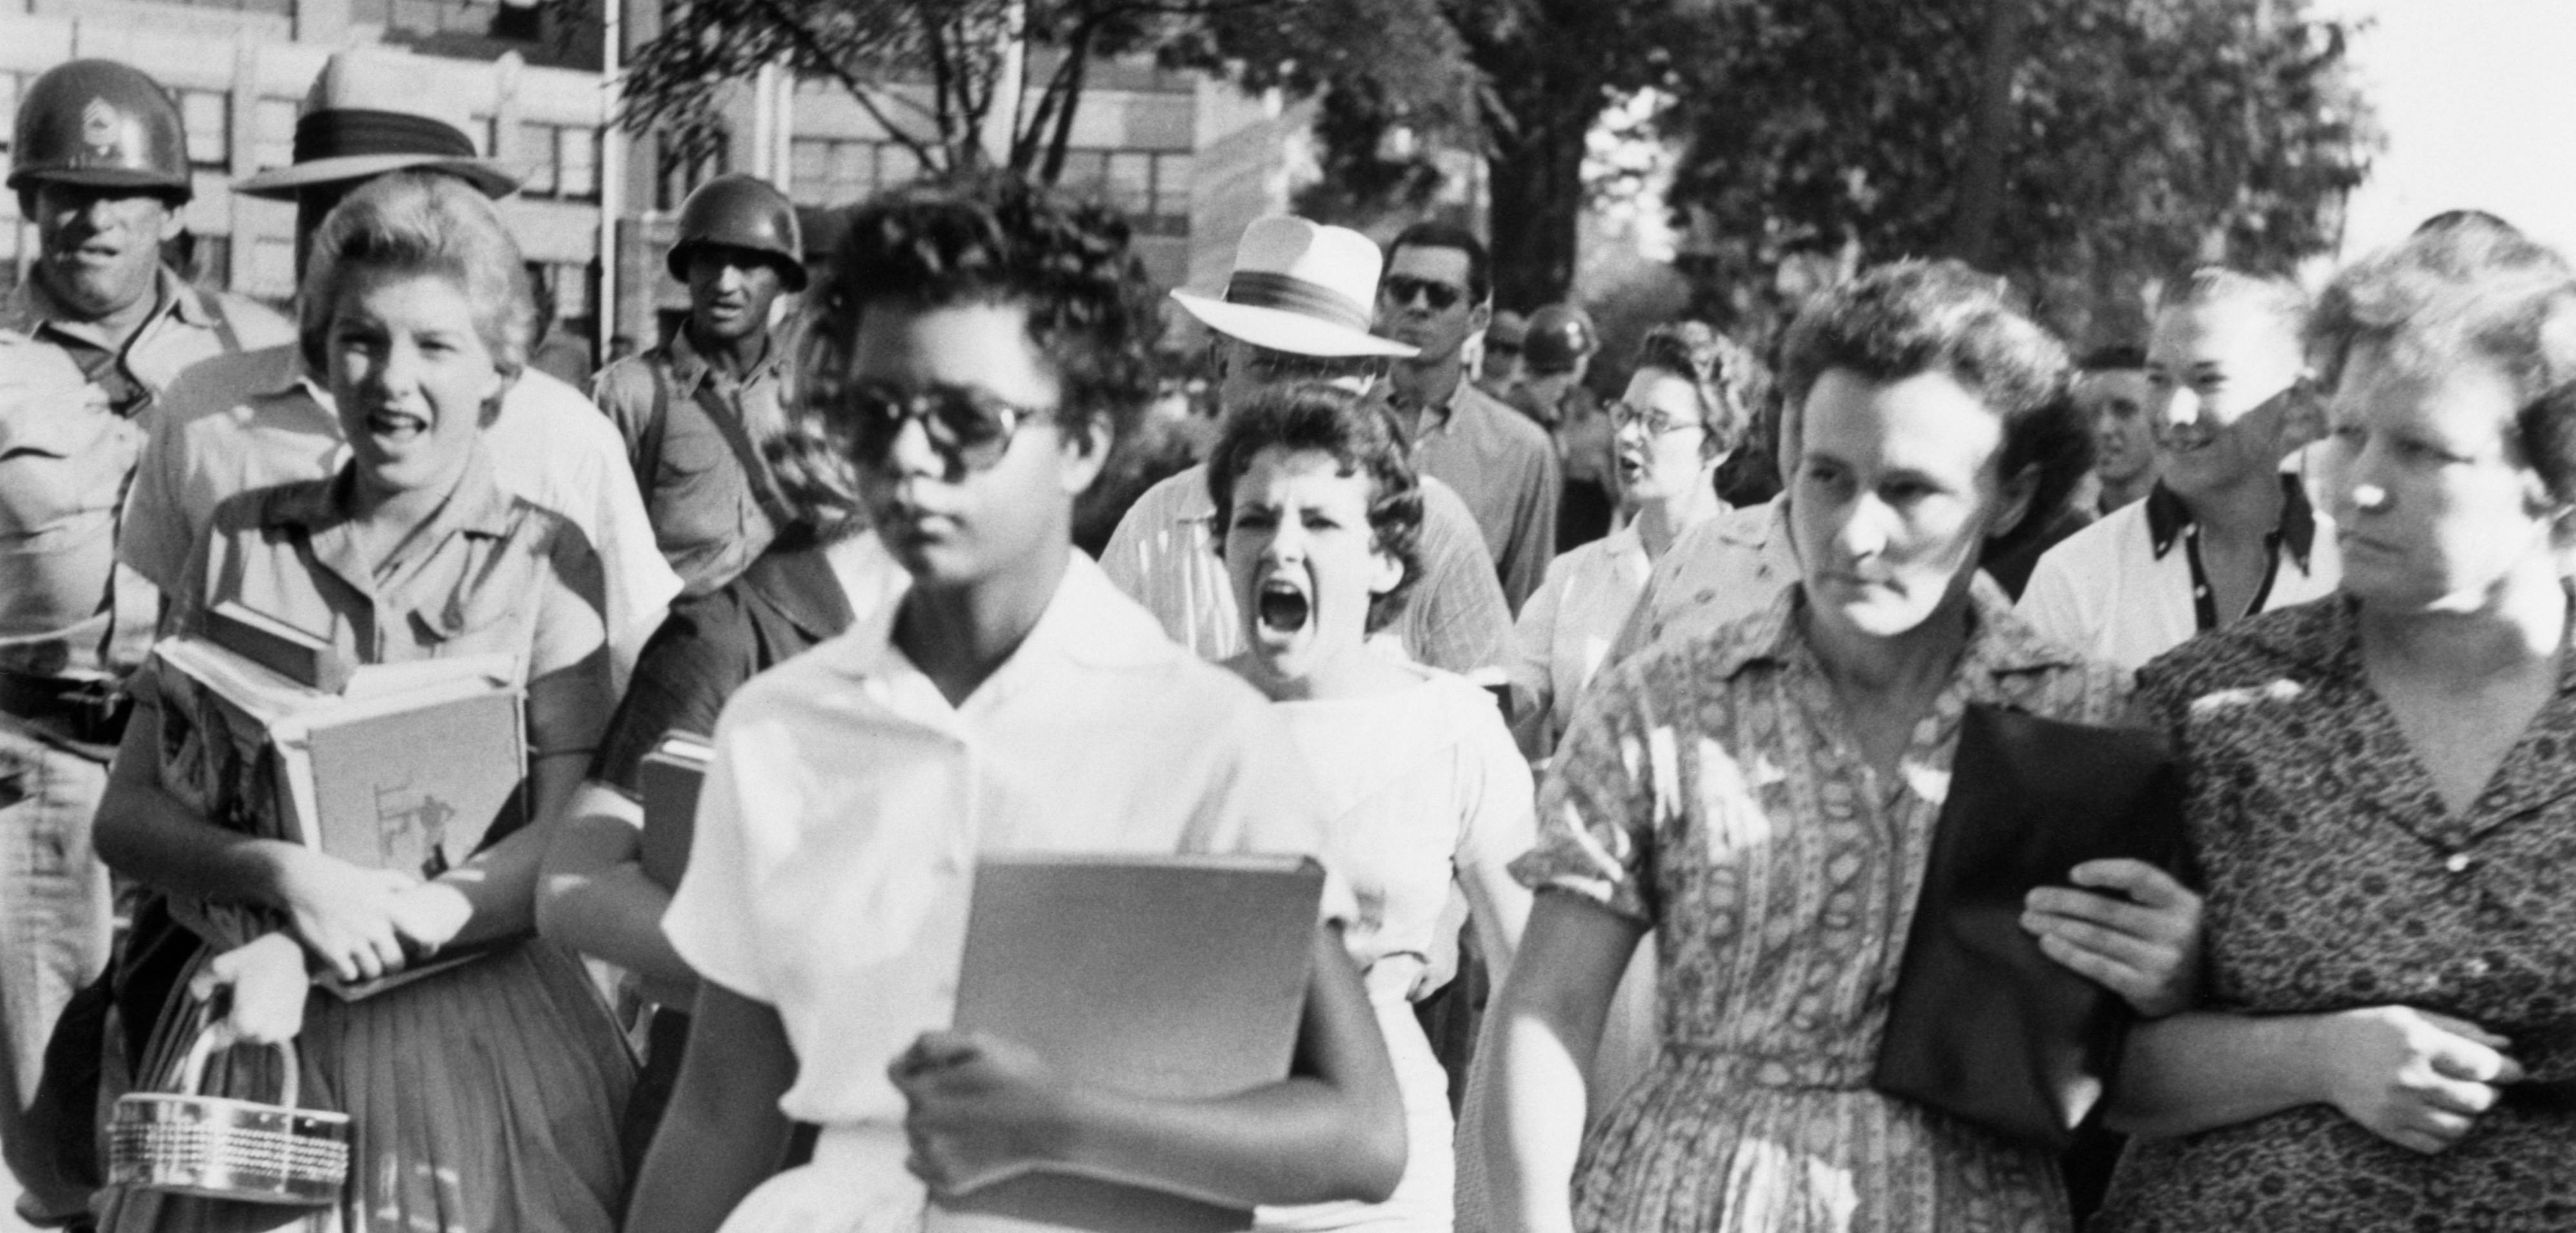 emancipation from segregation Board of education, king sent kennedy a 75-page appeal to request a ''national rededication to the principles of the emancipation proclamation and for an executive order prohibiting segregation'' (king, 17 may 1962.